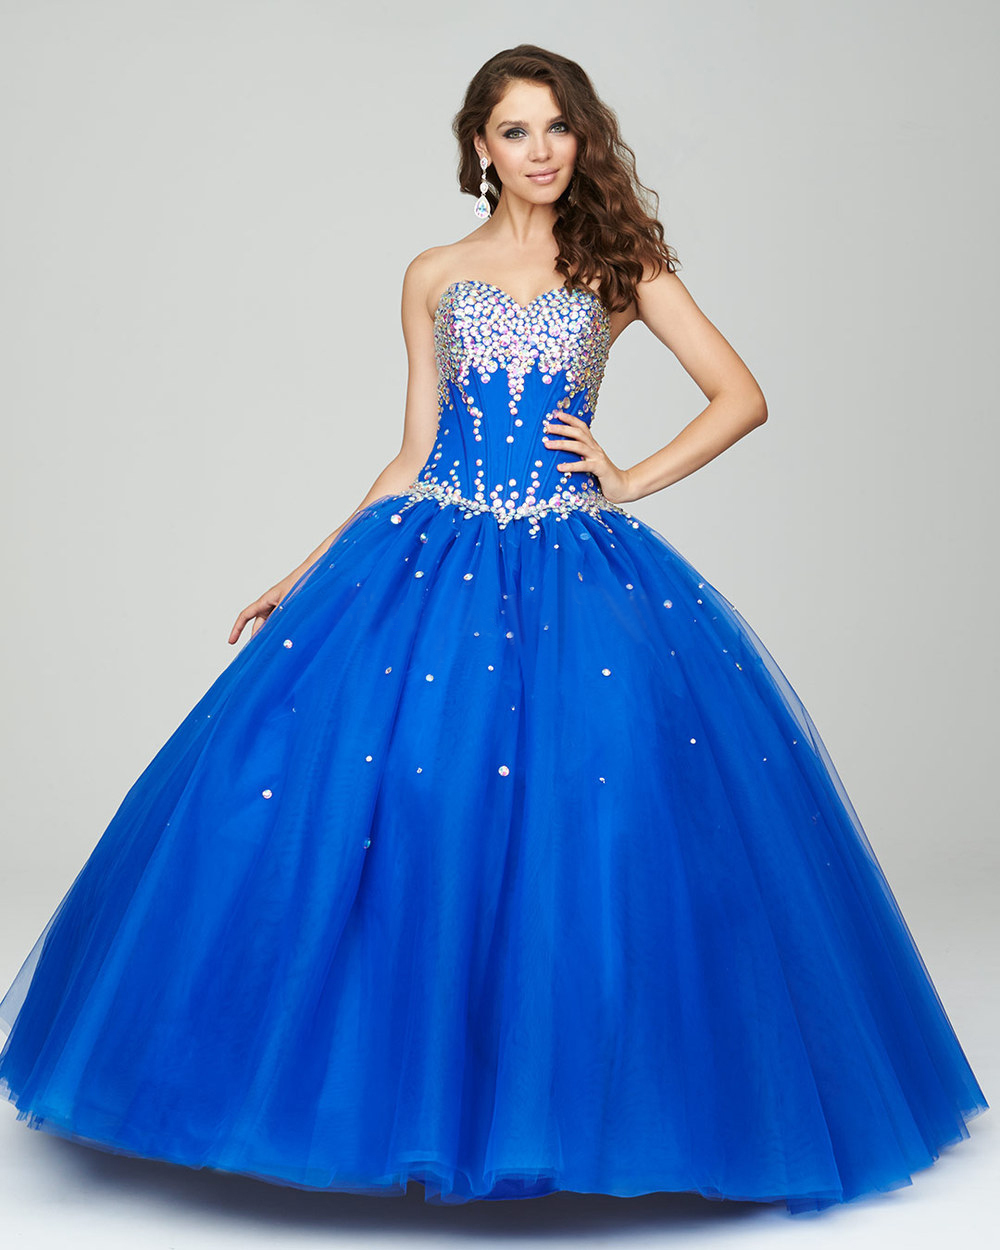 7a7af77e1b Cute Pink Quinceanera Dresses Ball Gowns Cheap Quinceanera Gowns Sweetheart  Beaded Bodice Lace Up Back-in Quinceanera Dresses from Weddings   Events on  ...